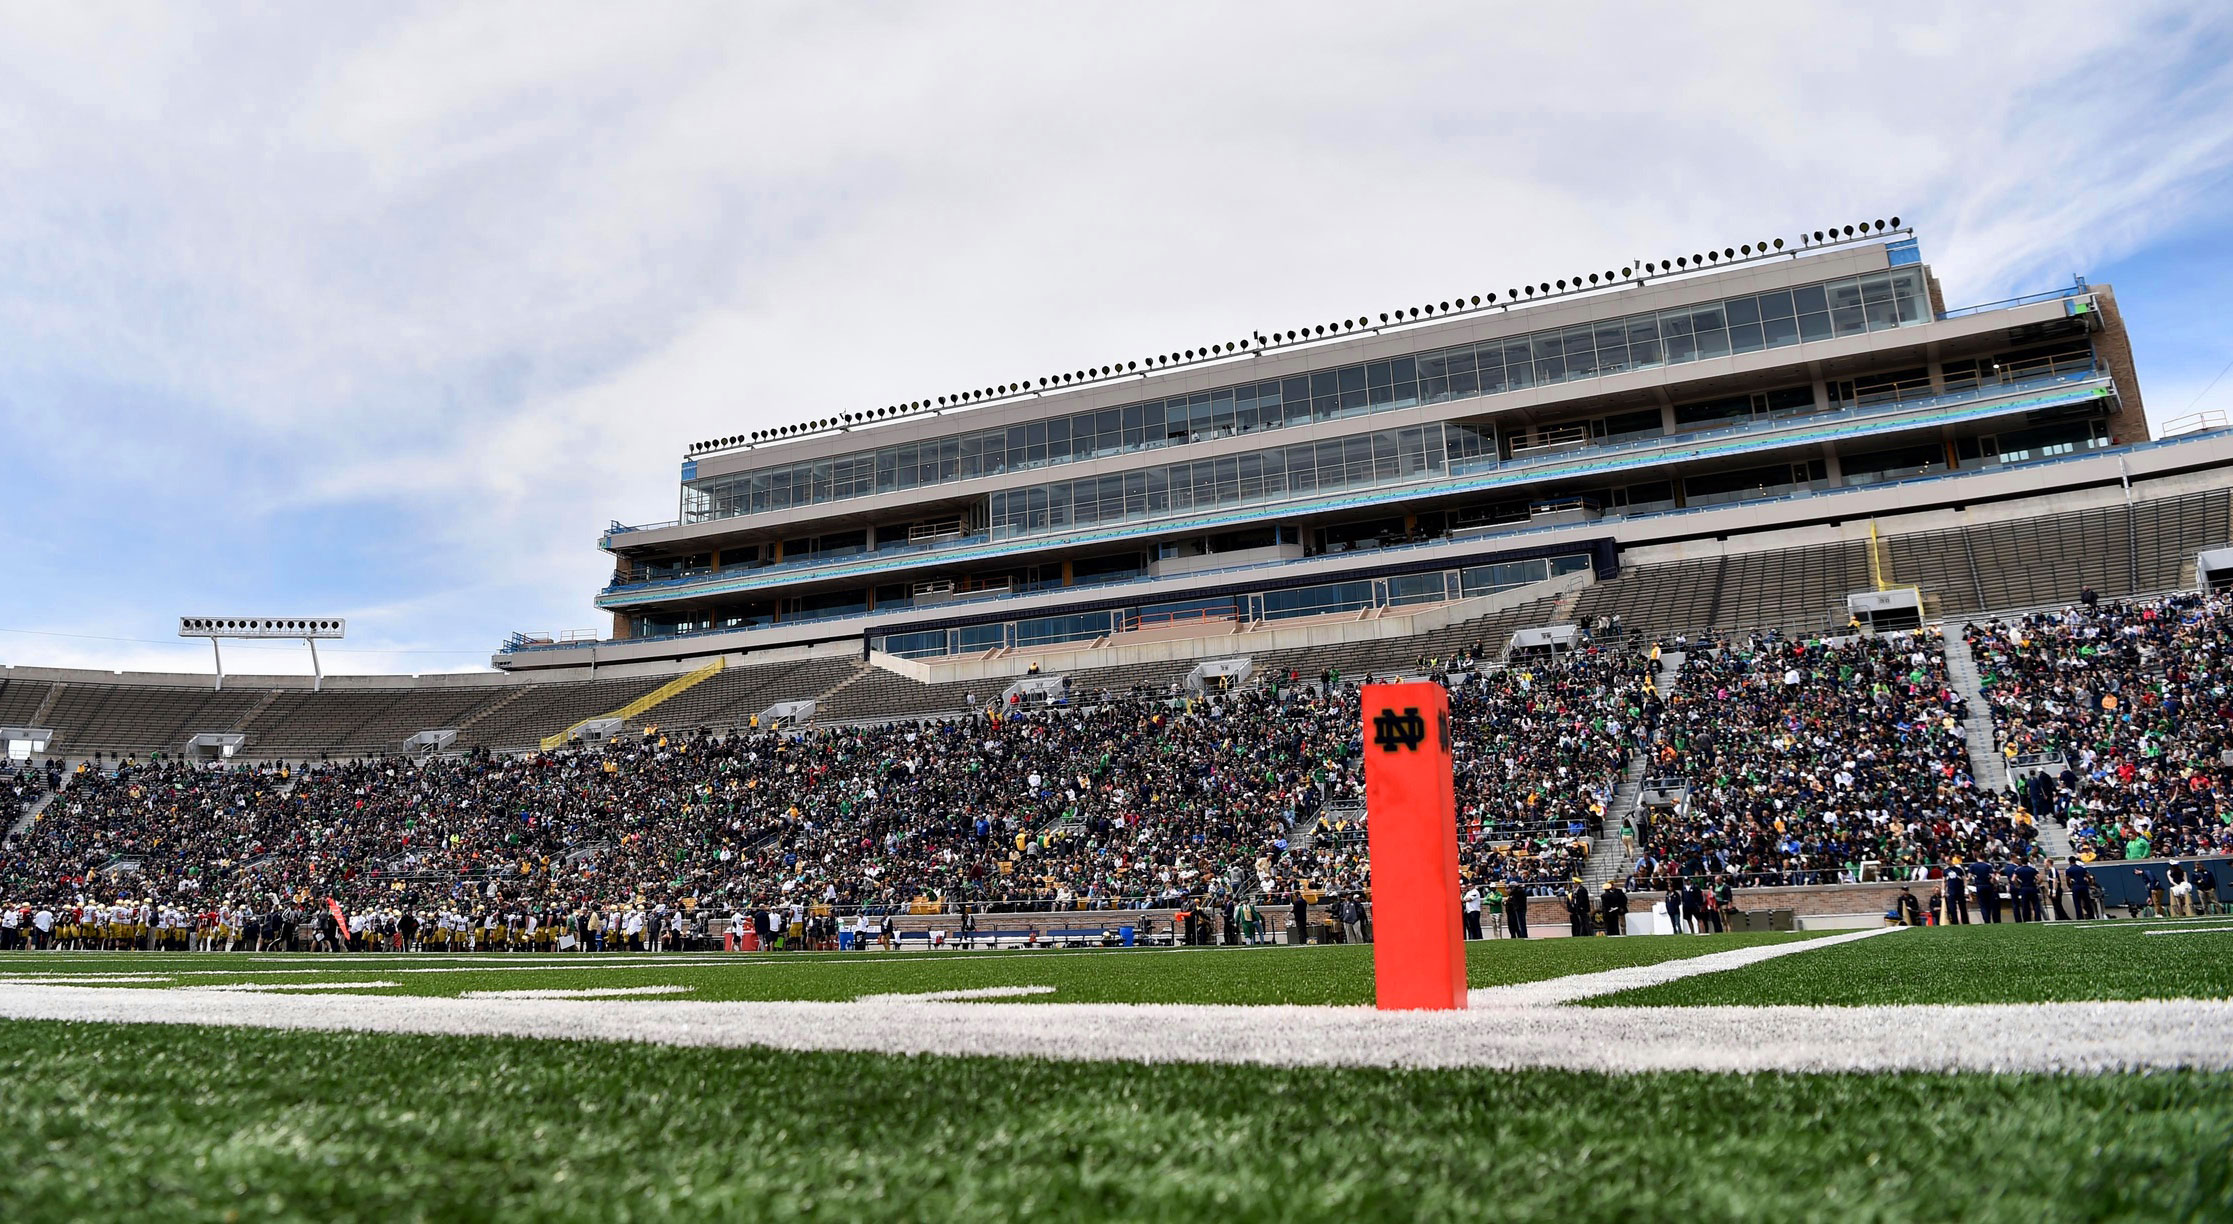 Notre Dame Football Schedule 2019 >> 2018 Notre Dame Spring Football Practice, Blue & Gold Game Dates // UHND.com